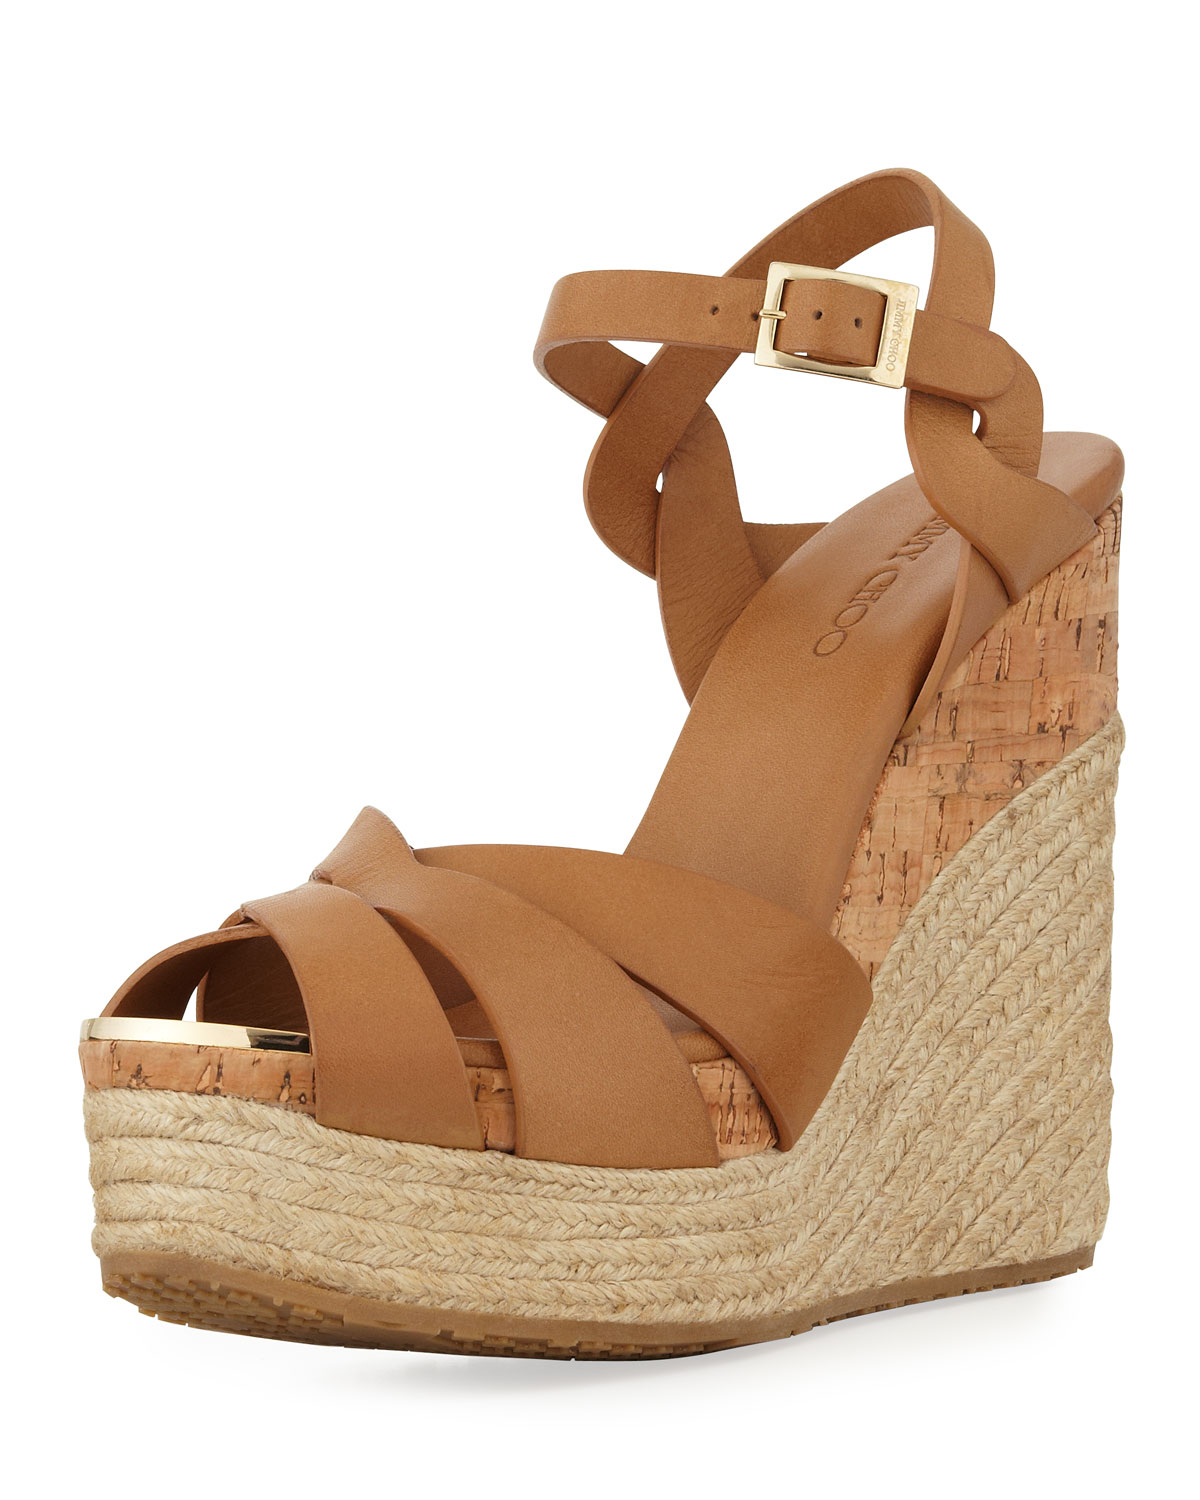 d194d1db2fb8 Lyst - Jimmy Choo Peddle Platform Wedge Sandal in Natural